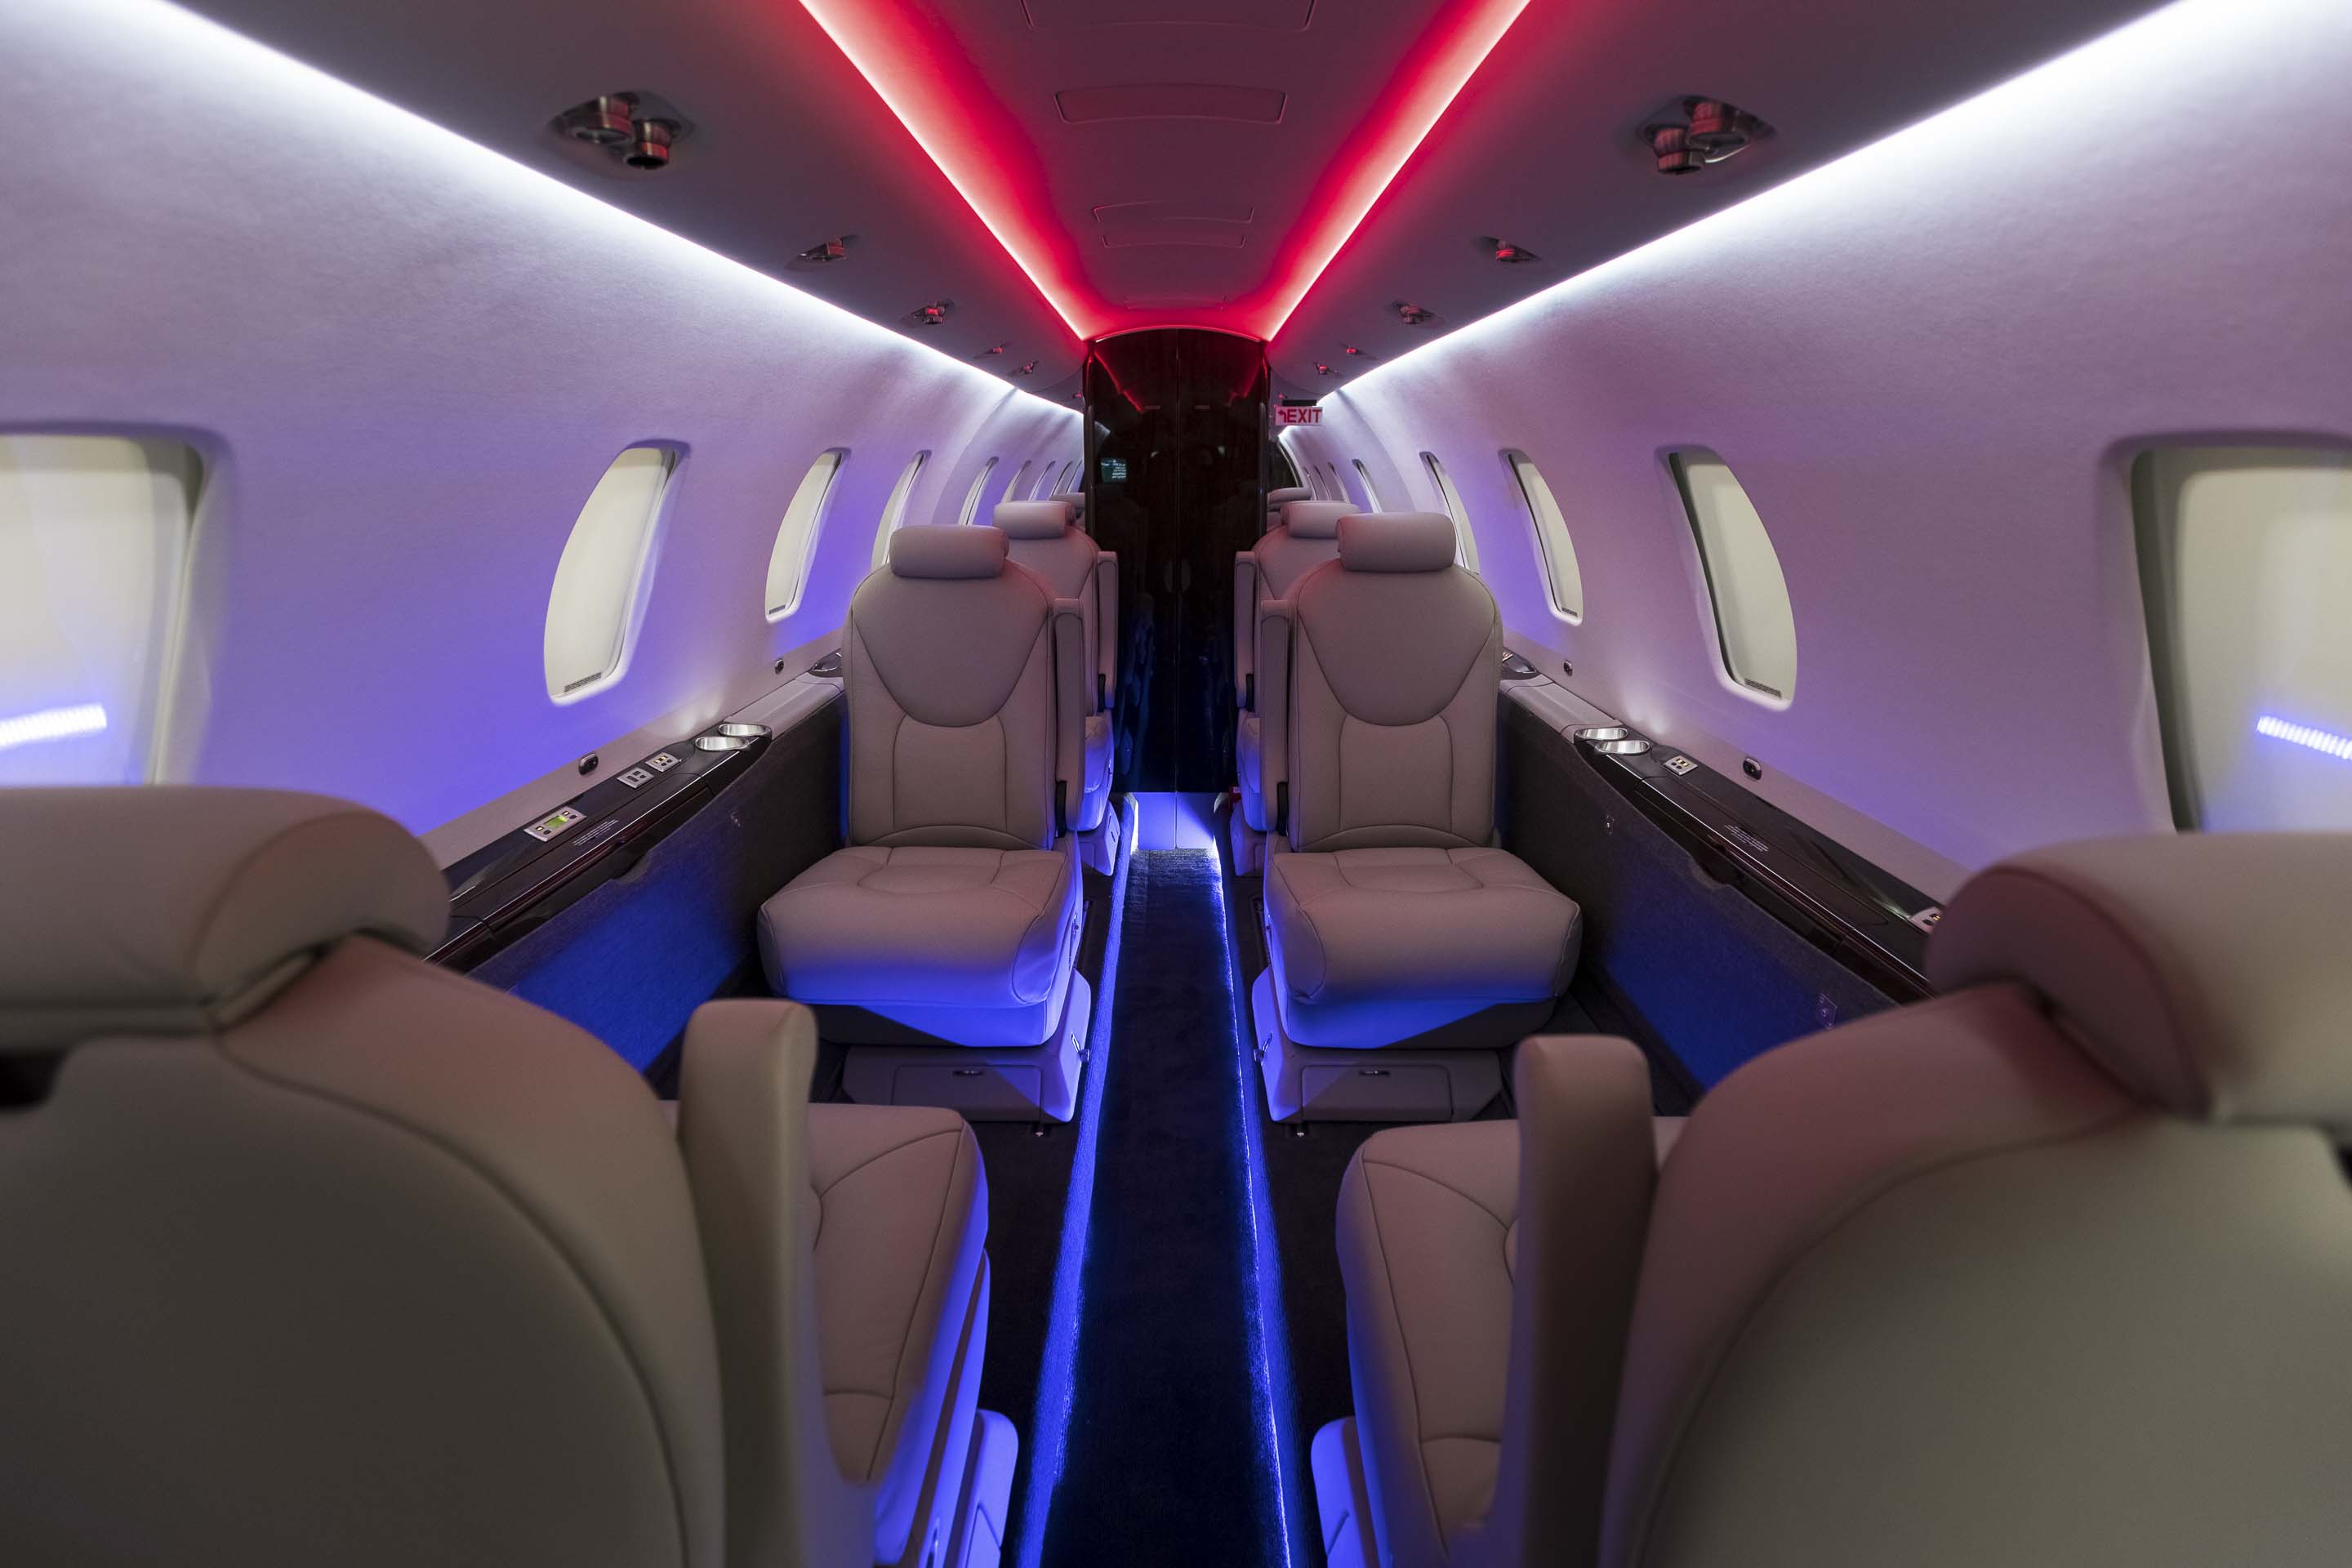 PRIZM cabin lighting by Elliott Technologies